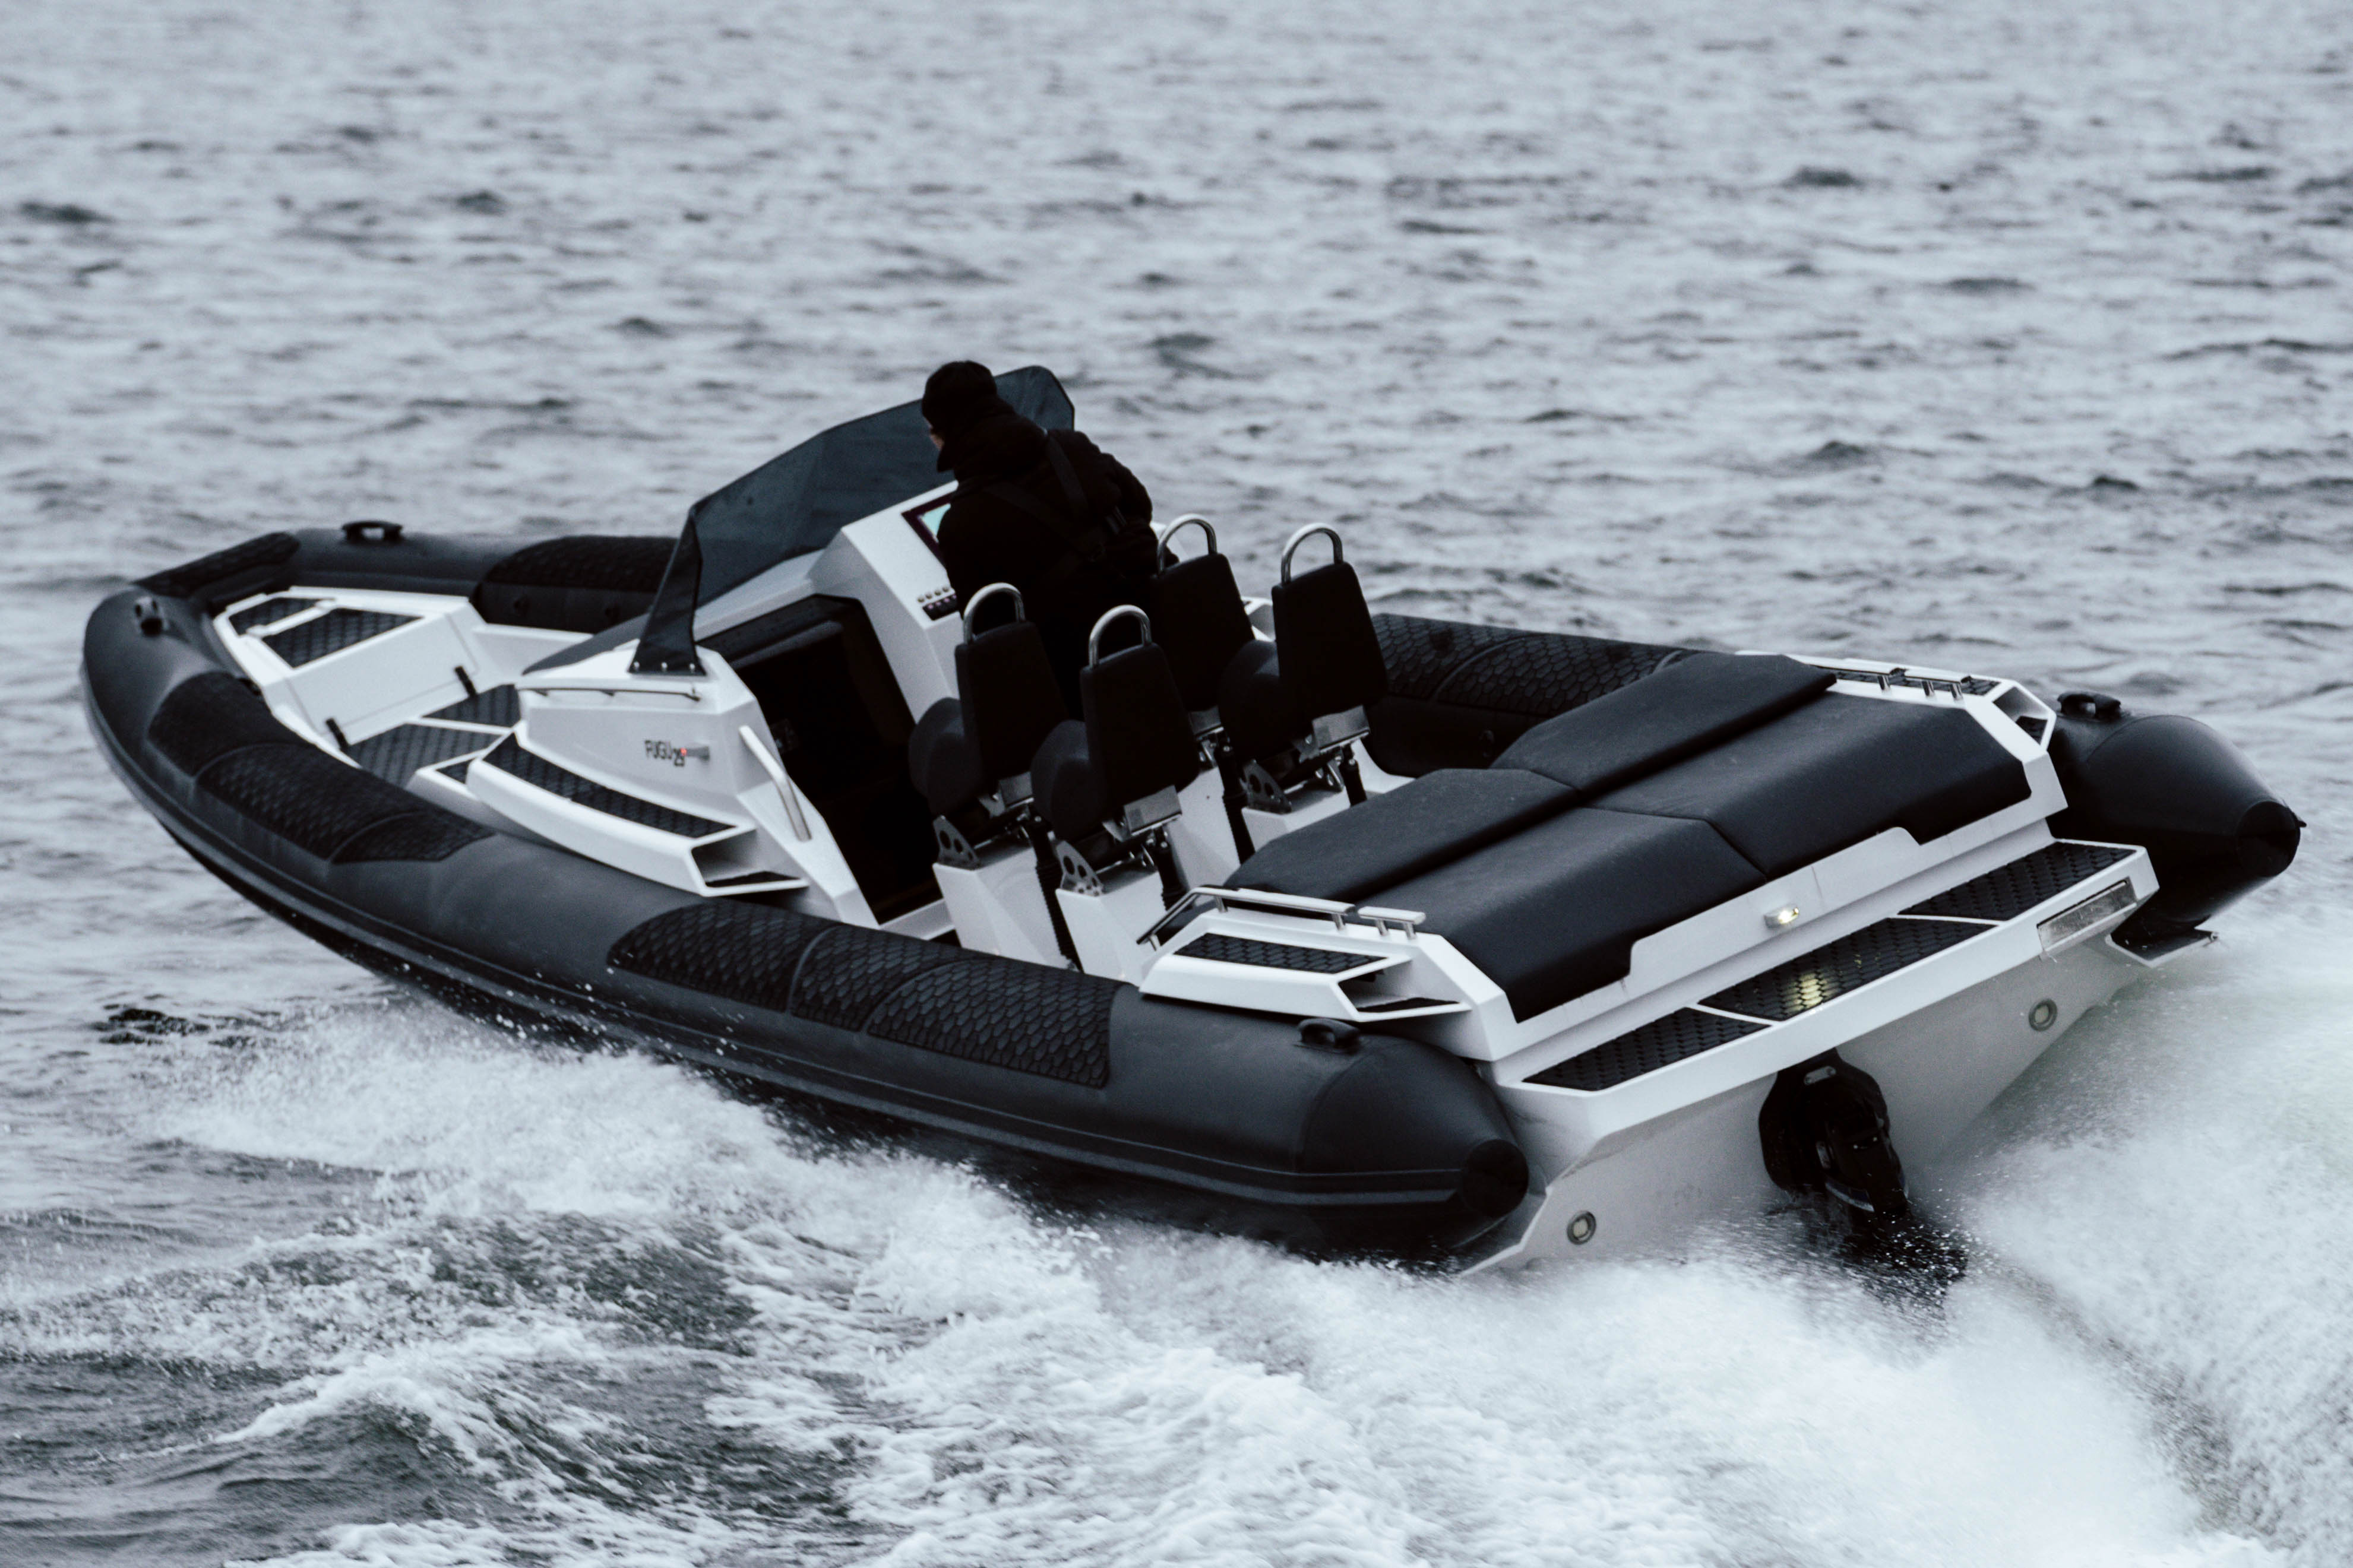 [Member News] Salterns Brokerage becomes UK's first distributor for FUGU Powerboats